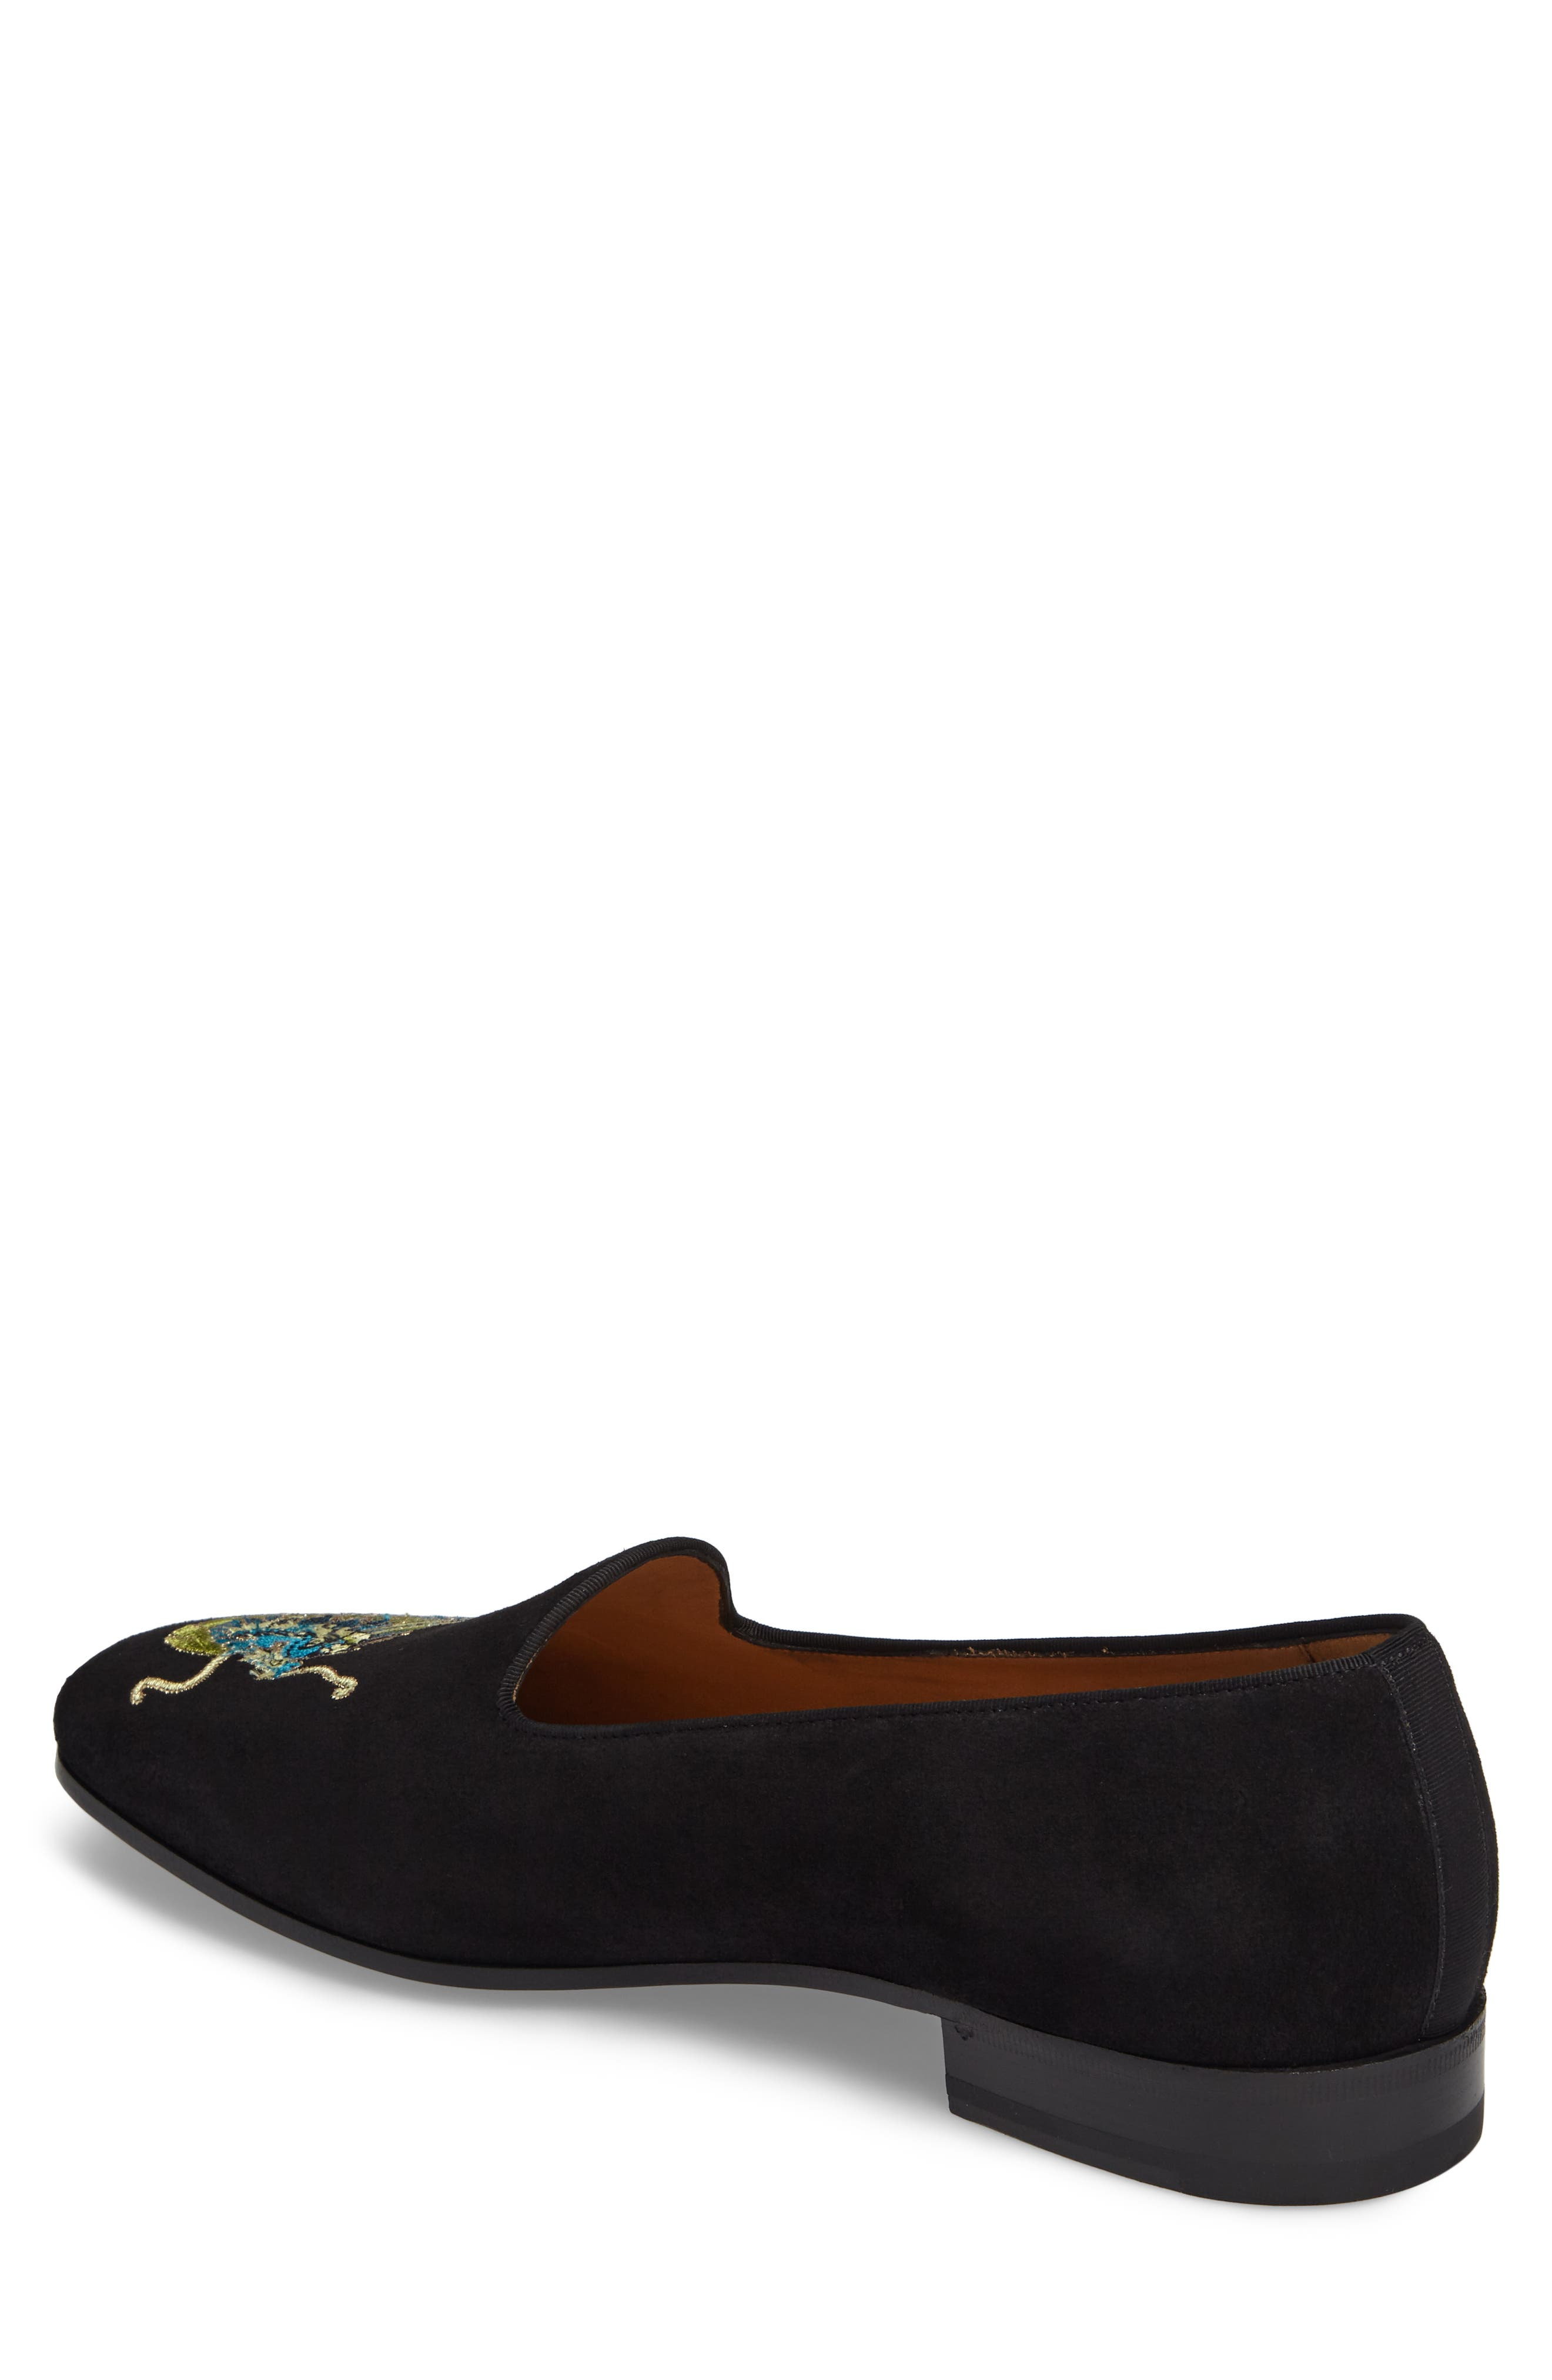 Dragon Embroidered Suede Loafer,                             Alternate thumbnail 2, color,                             001